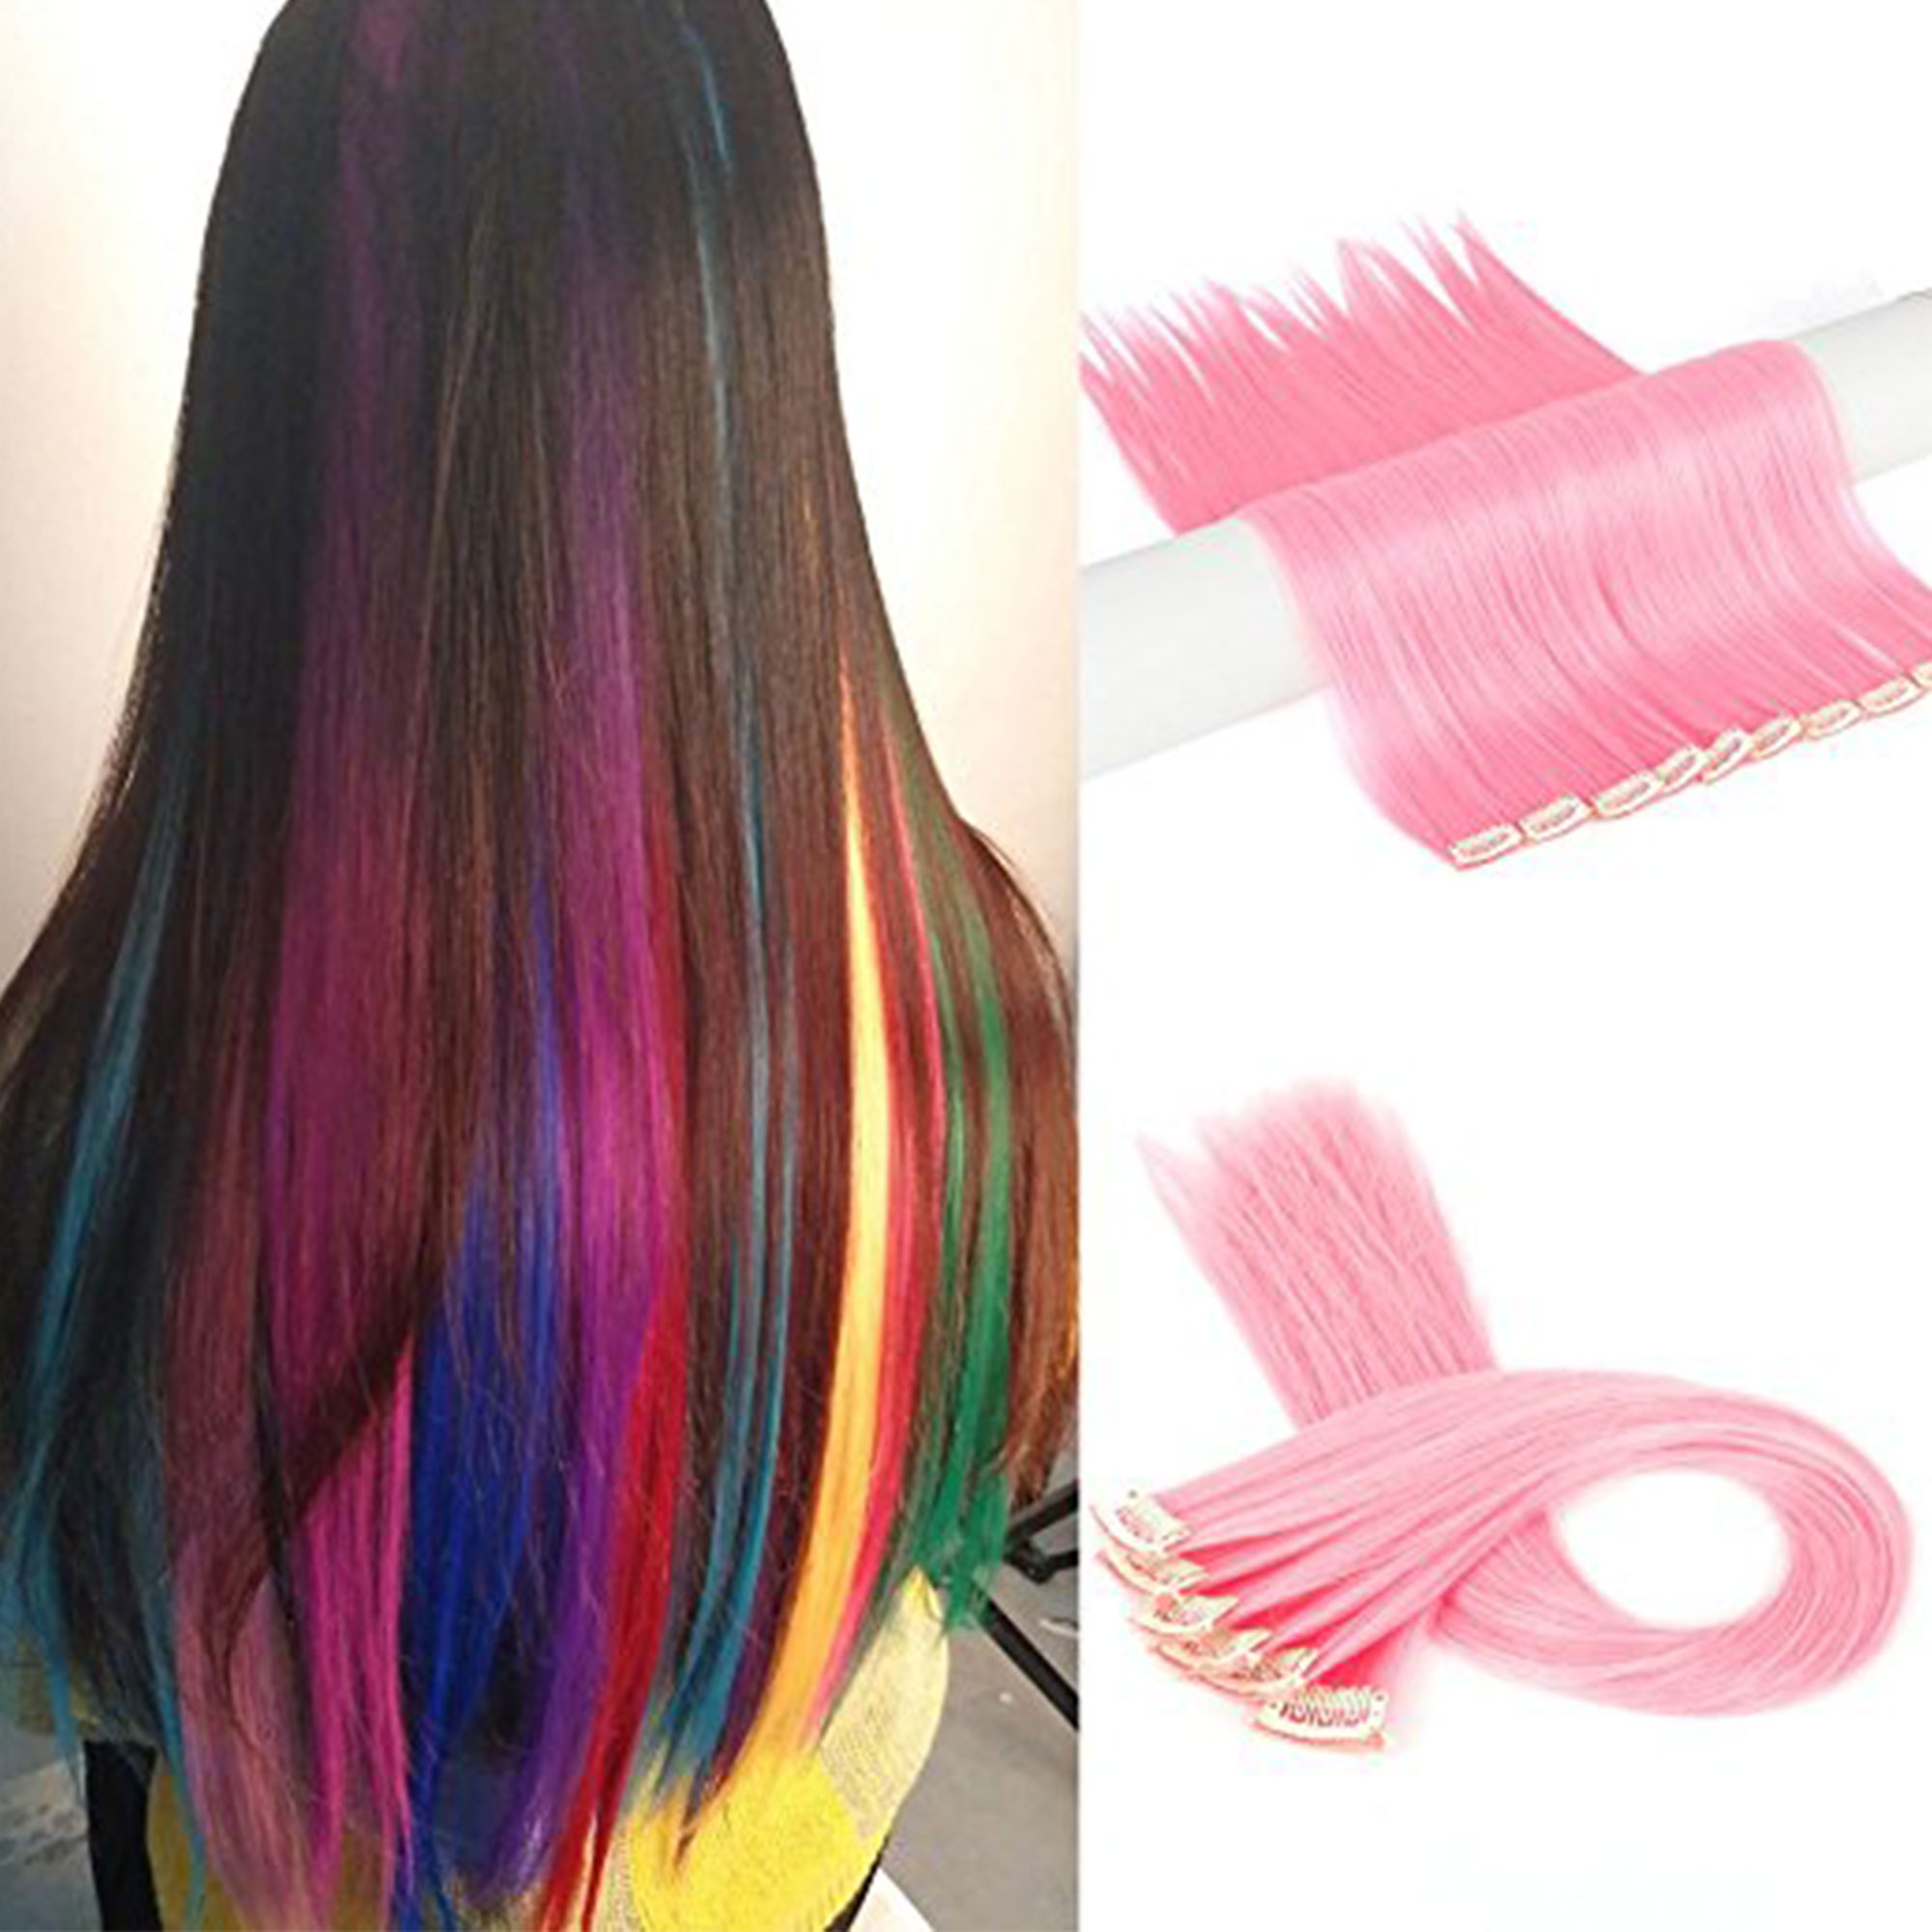 FLORATA 11PCS Straight Colored Clip in Hair Extensions Party Highlight Multiple Colors Hairpieces